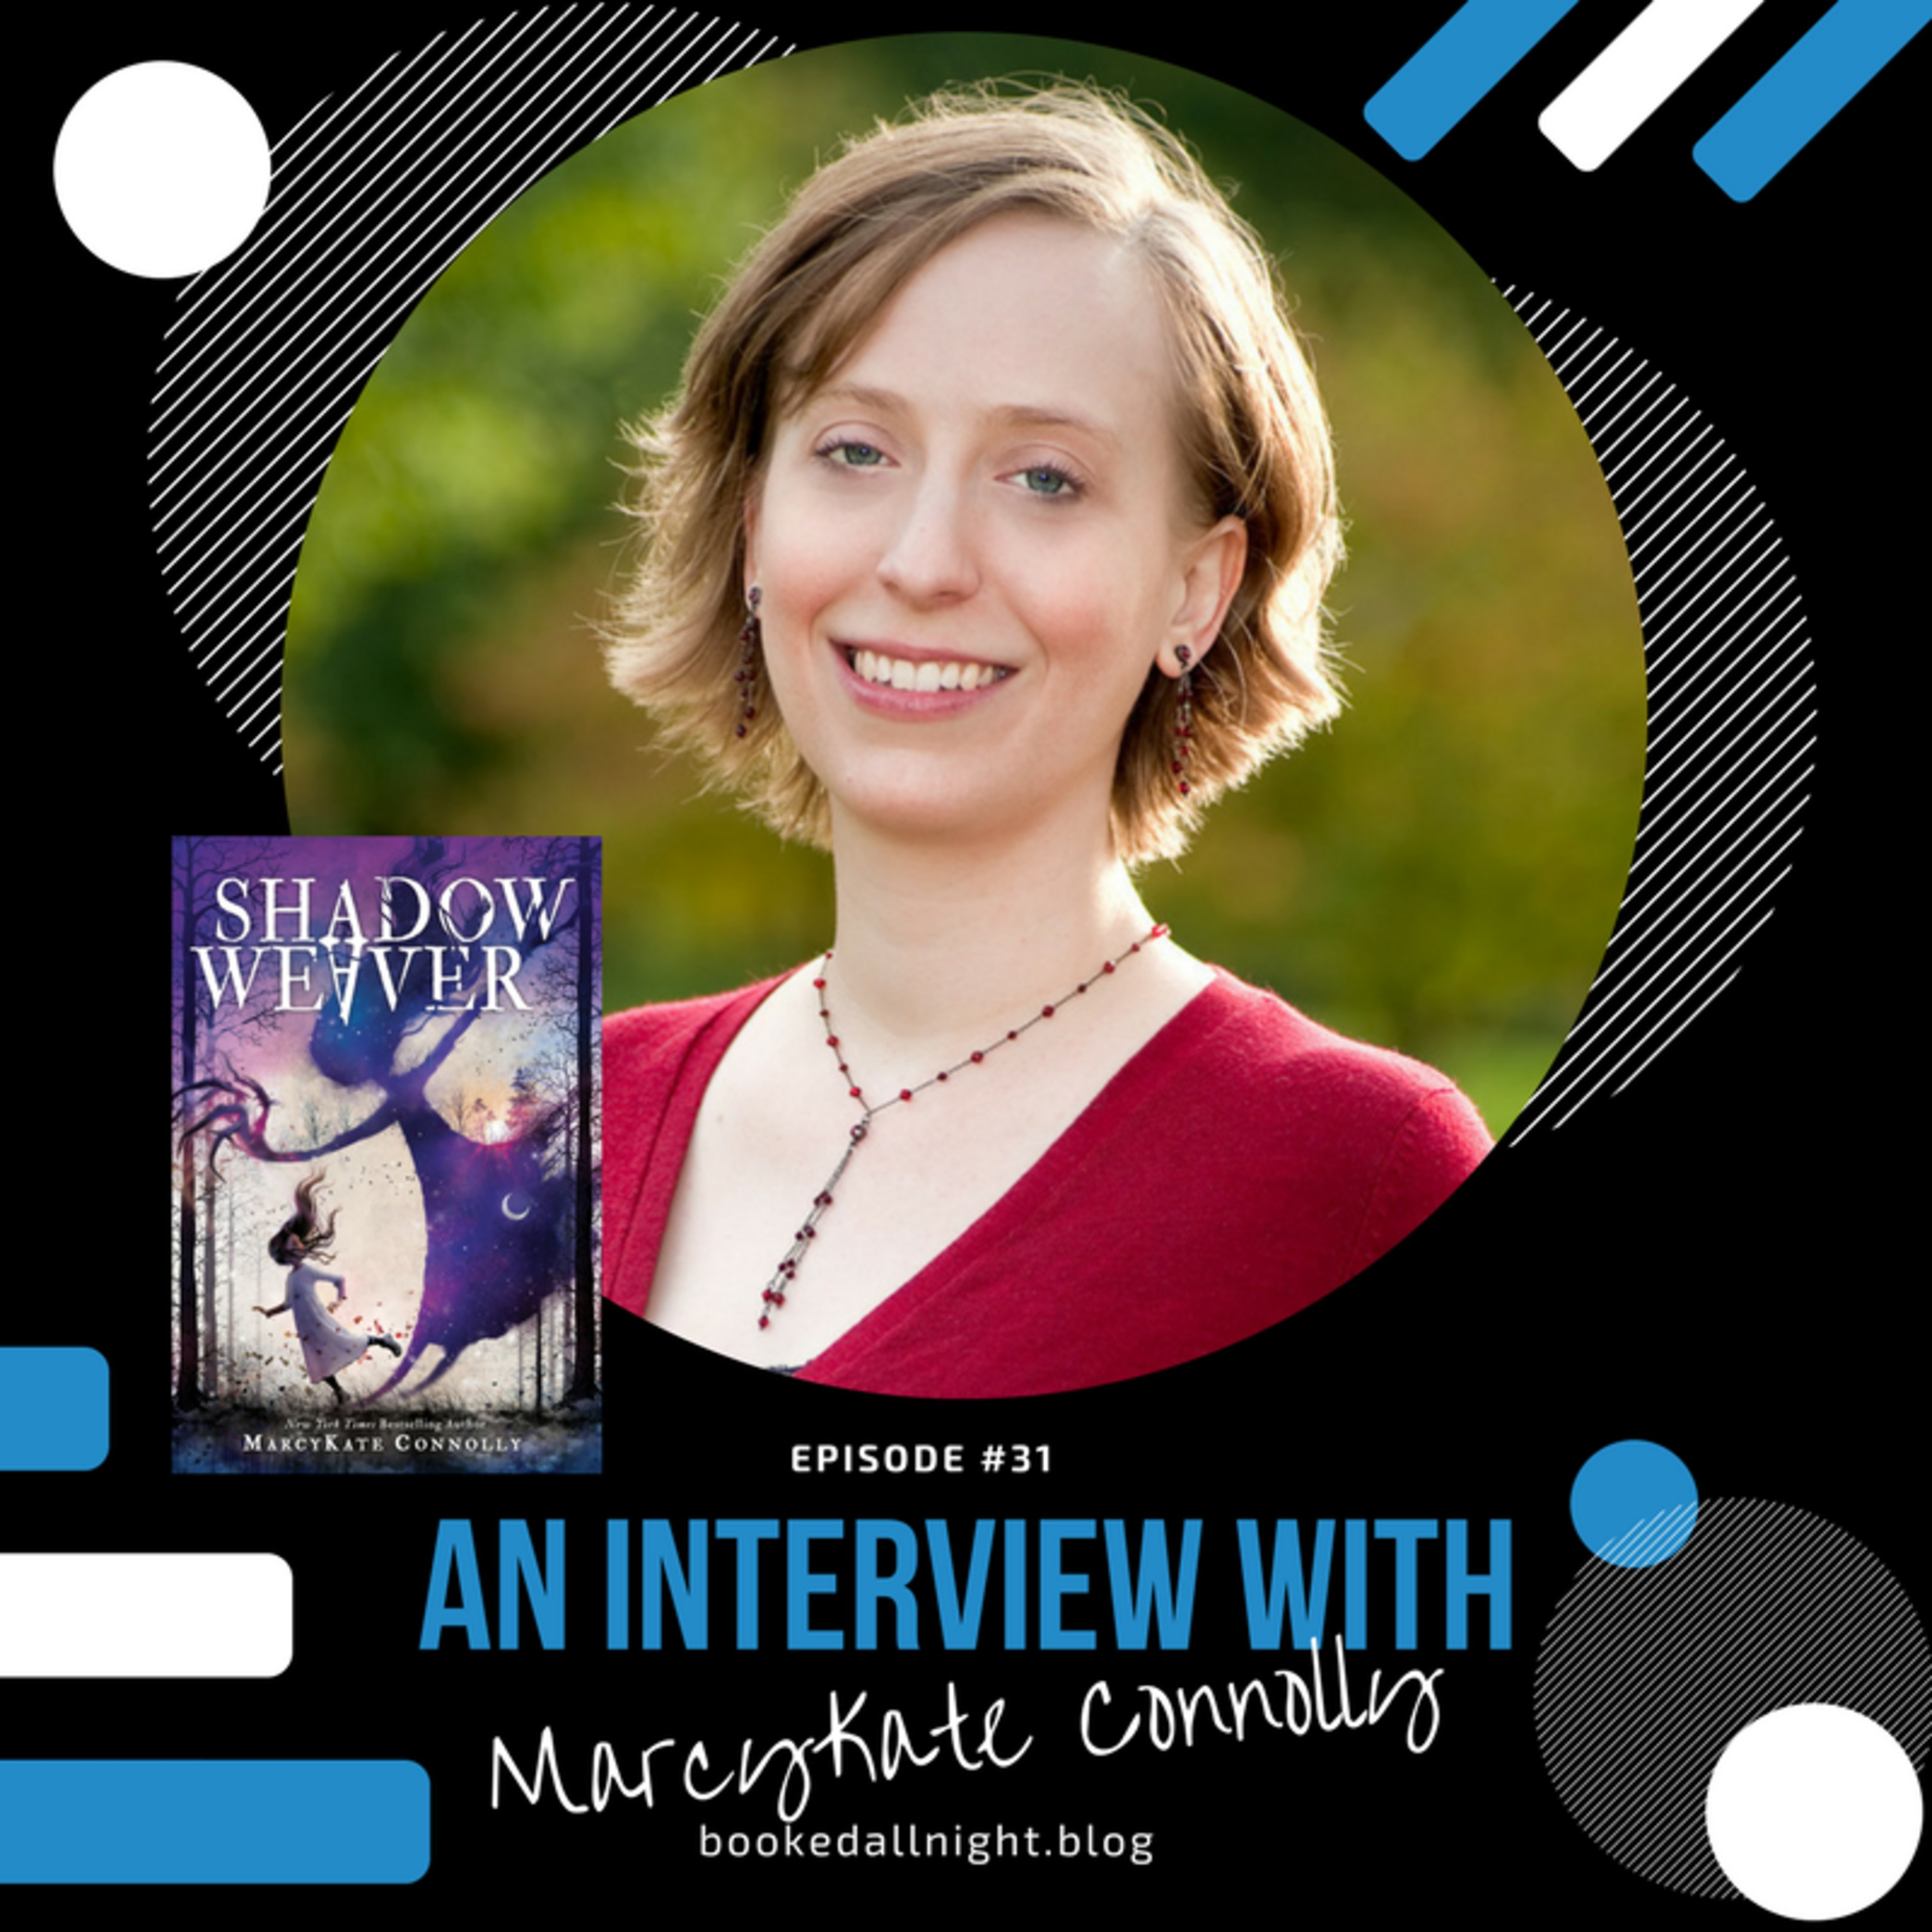 An Interview with MarcyKate Connolly